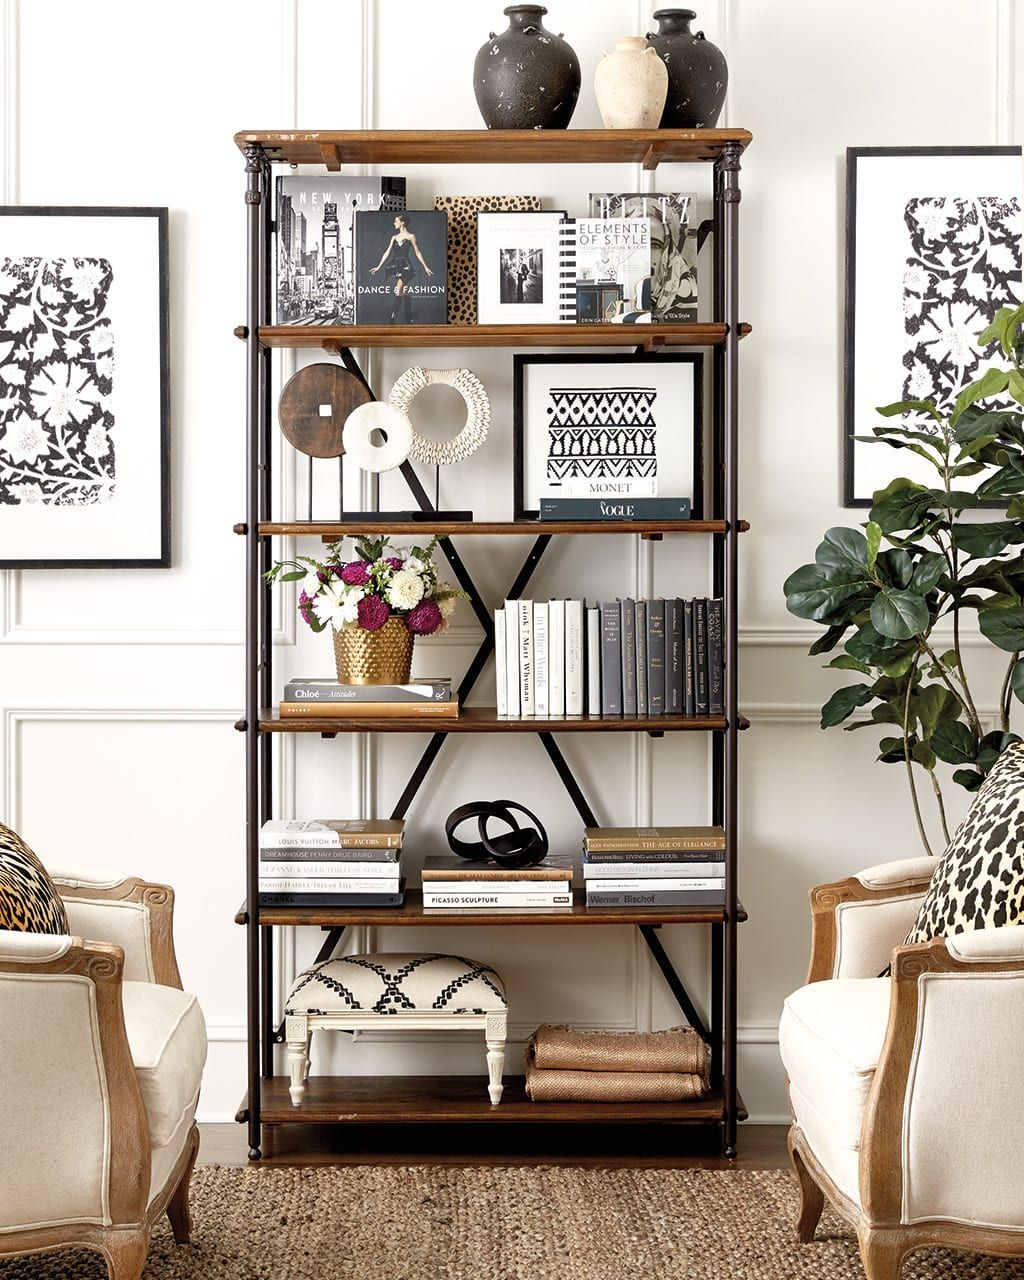 10 Ways to Start Decorating a Room from Scratch